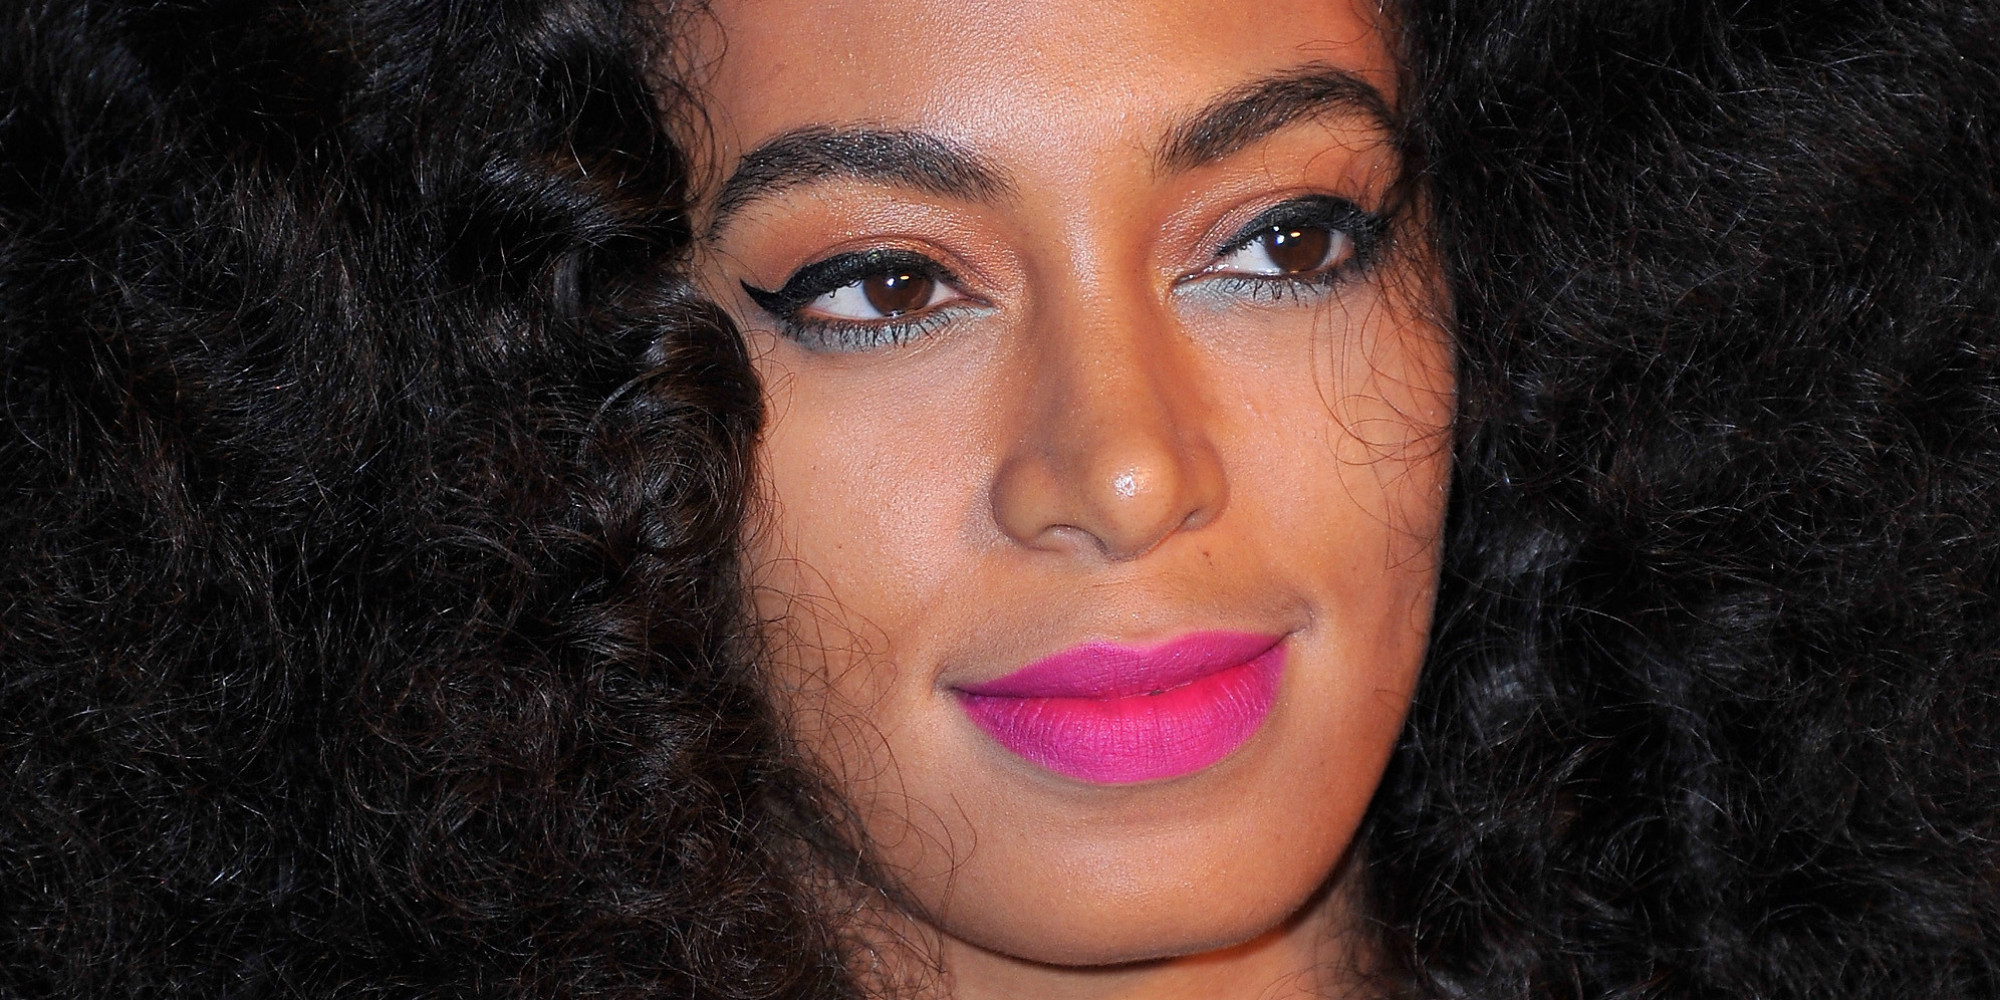 Solange Knowles' Ombré Lipstick & More Celebrity Beauty Looks We ...